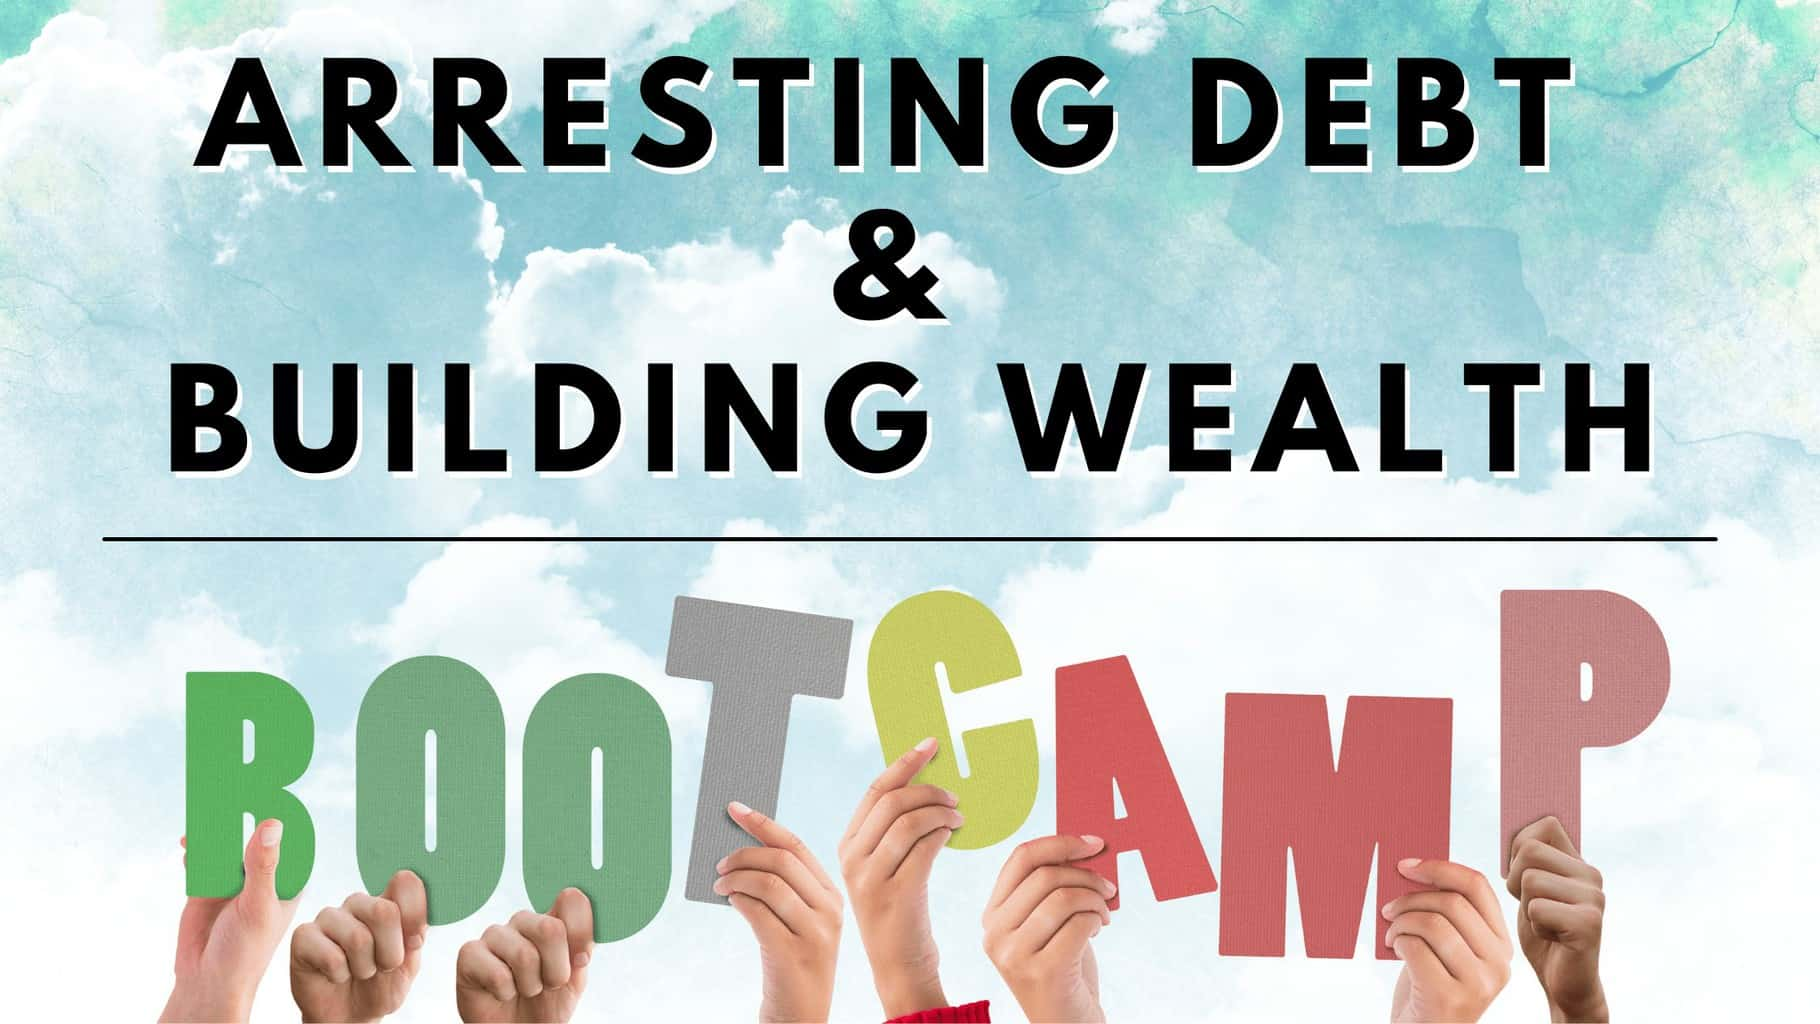 BOOTCAMP Arresting Debt and Building Wealth Bootcamp